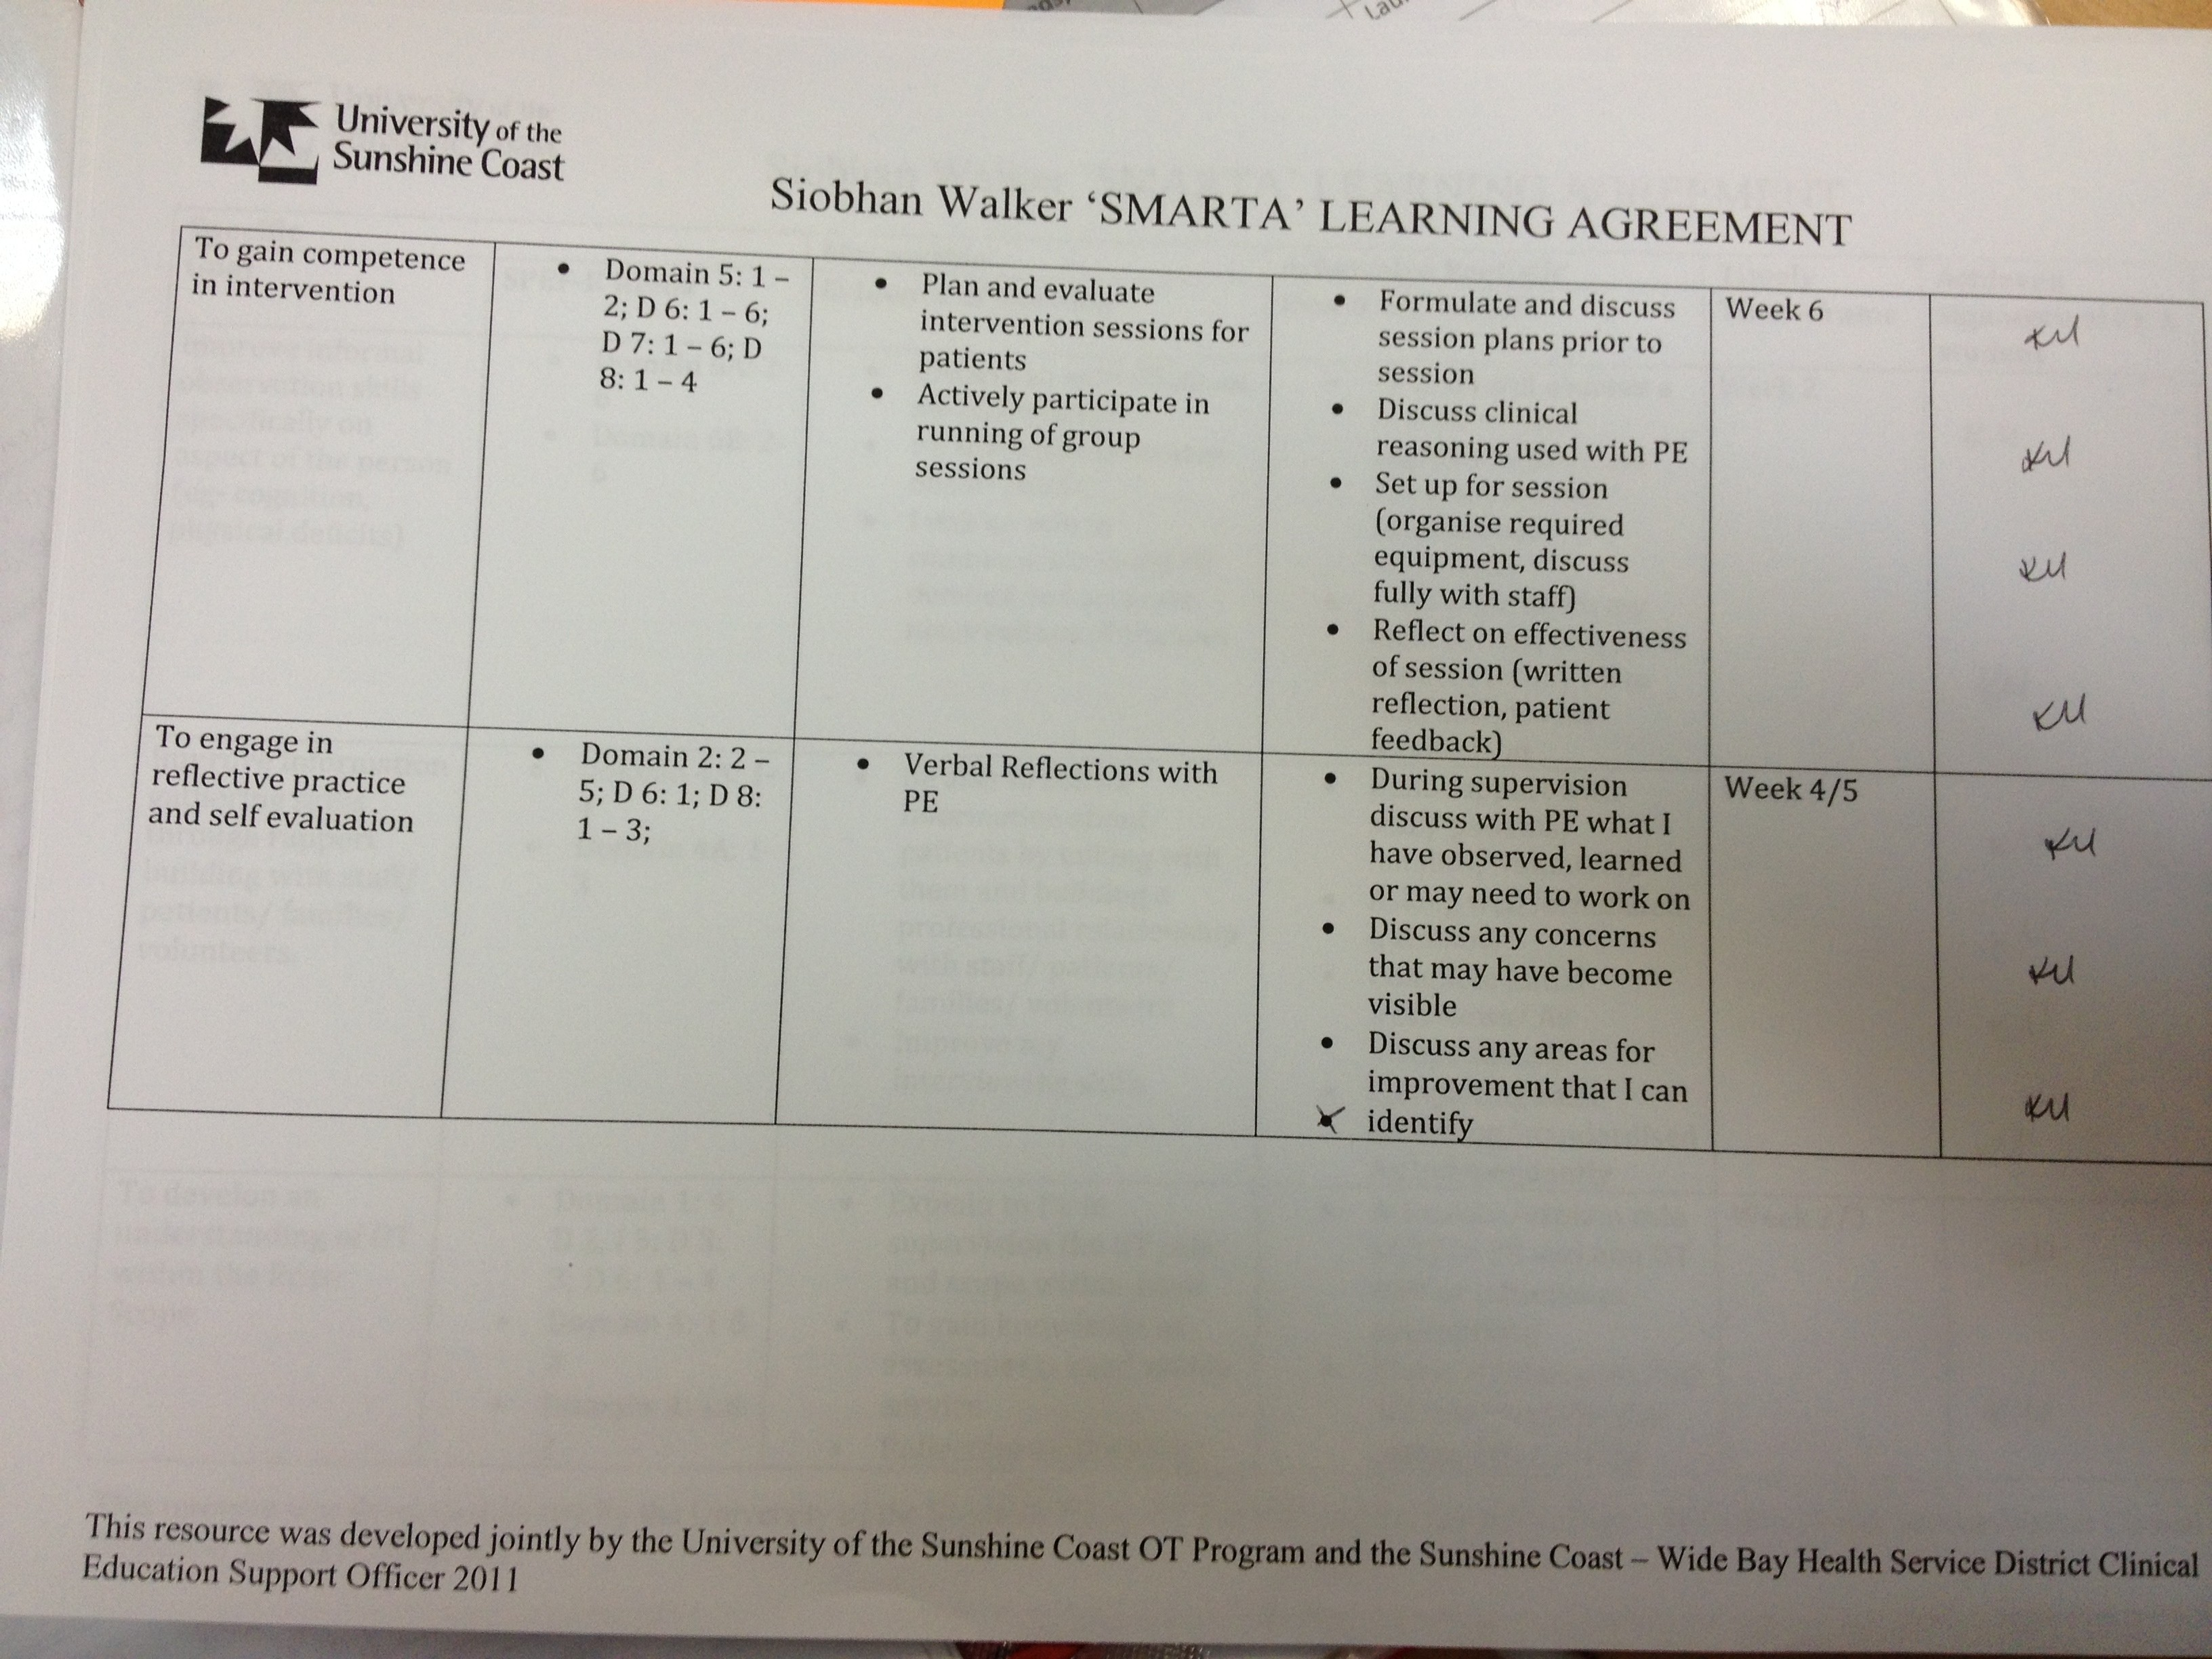 Example Smarta Learning Agreement Goals